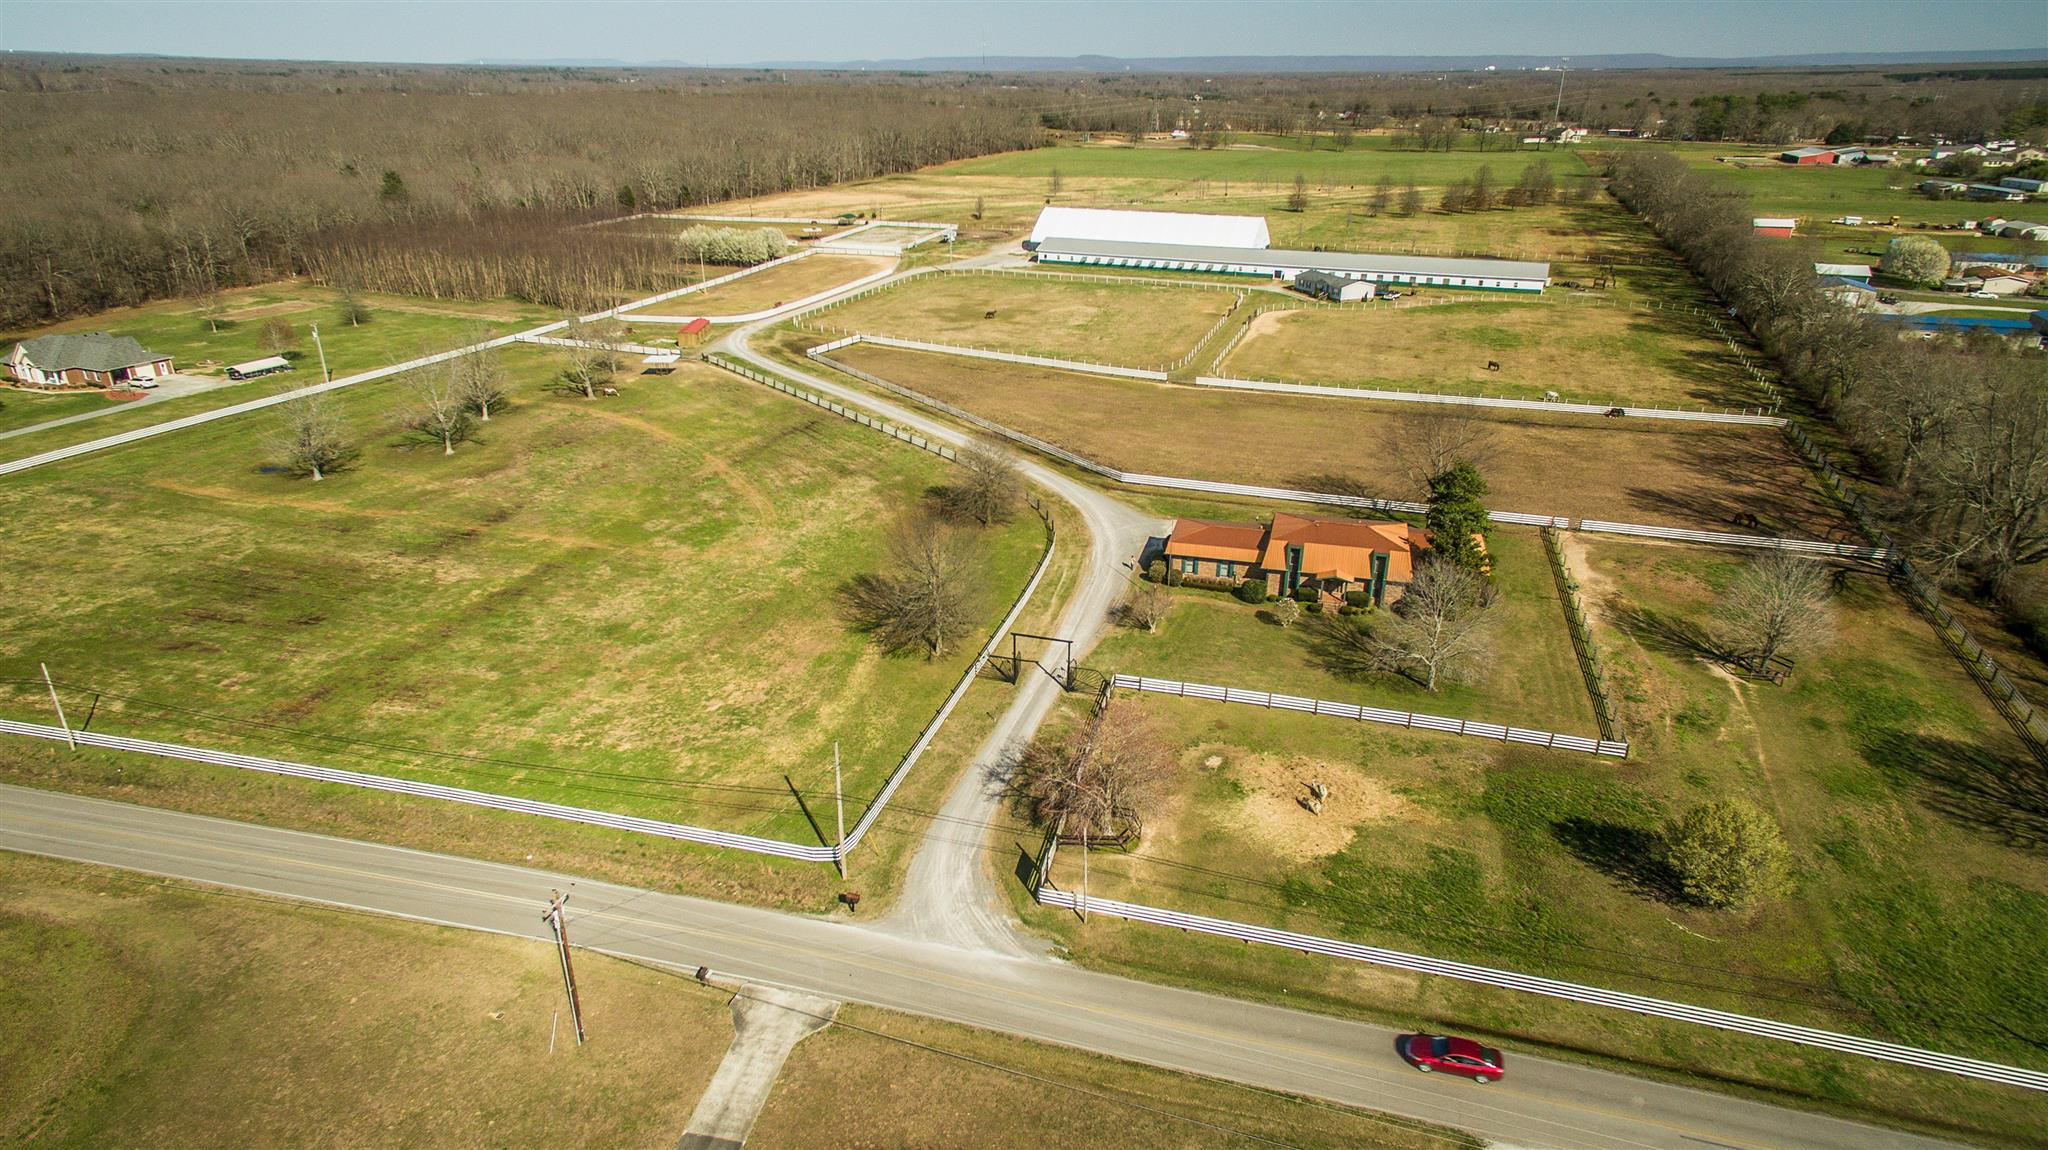 Image of  for Sale near Tullahoma, Tennessee, in Coffee County: 36.72 acres